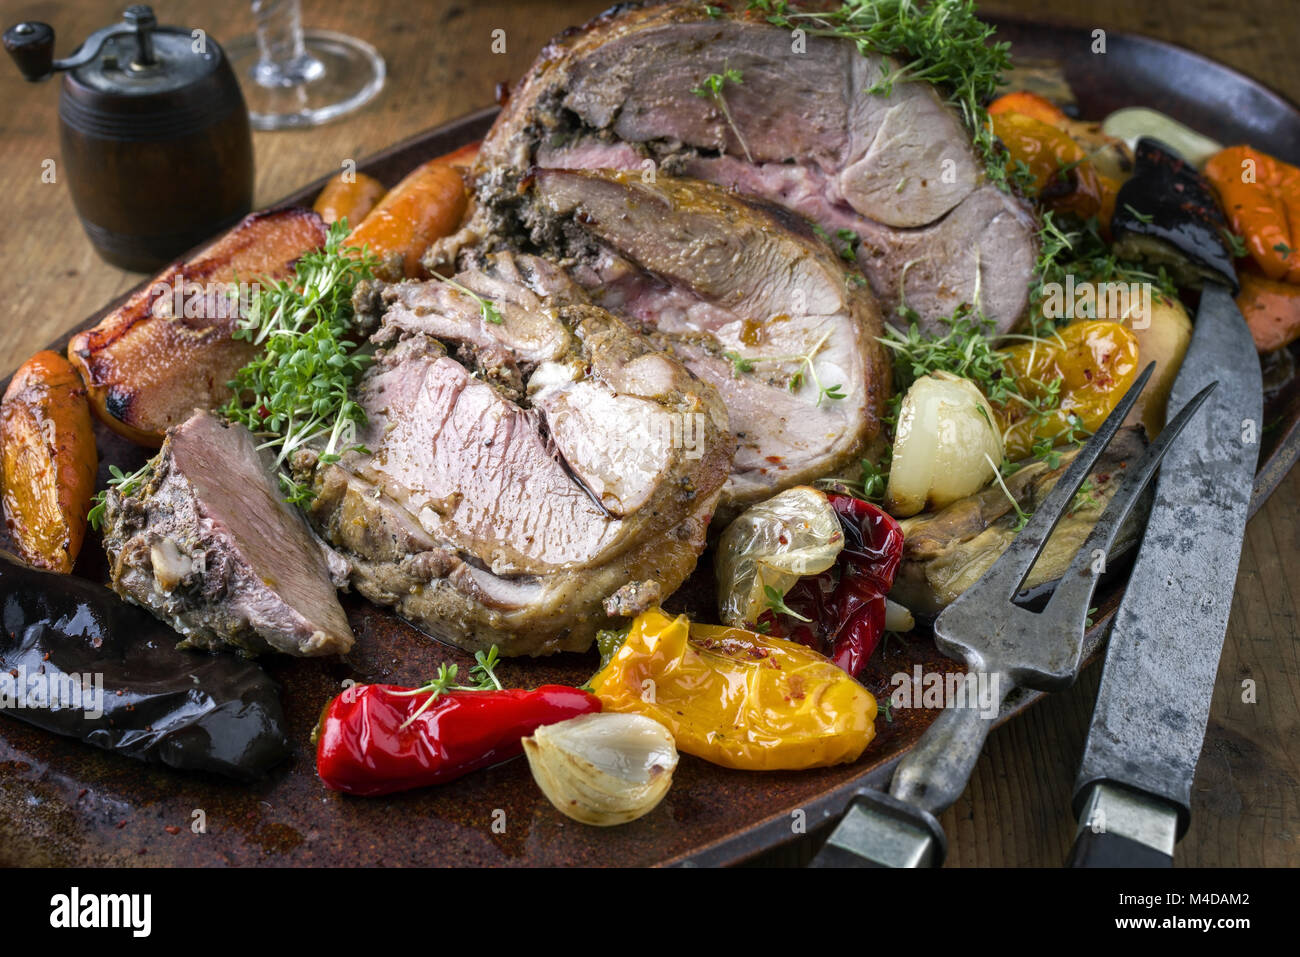 Leg of Lamb with Vegetable and Fruits - Stock Image